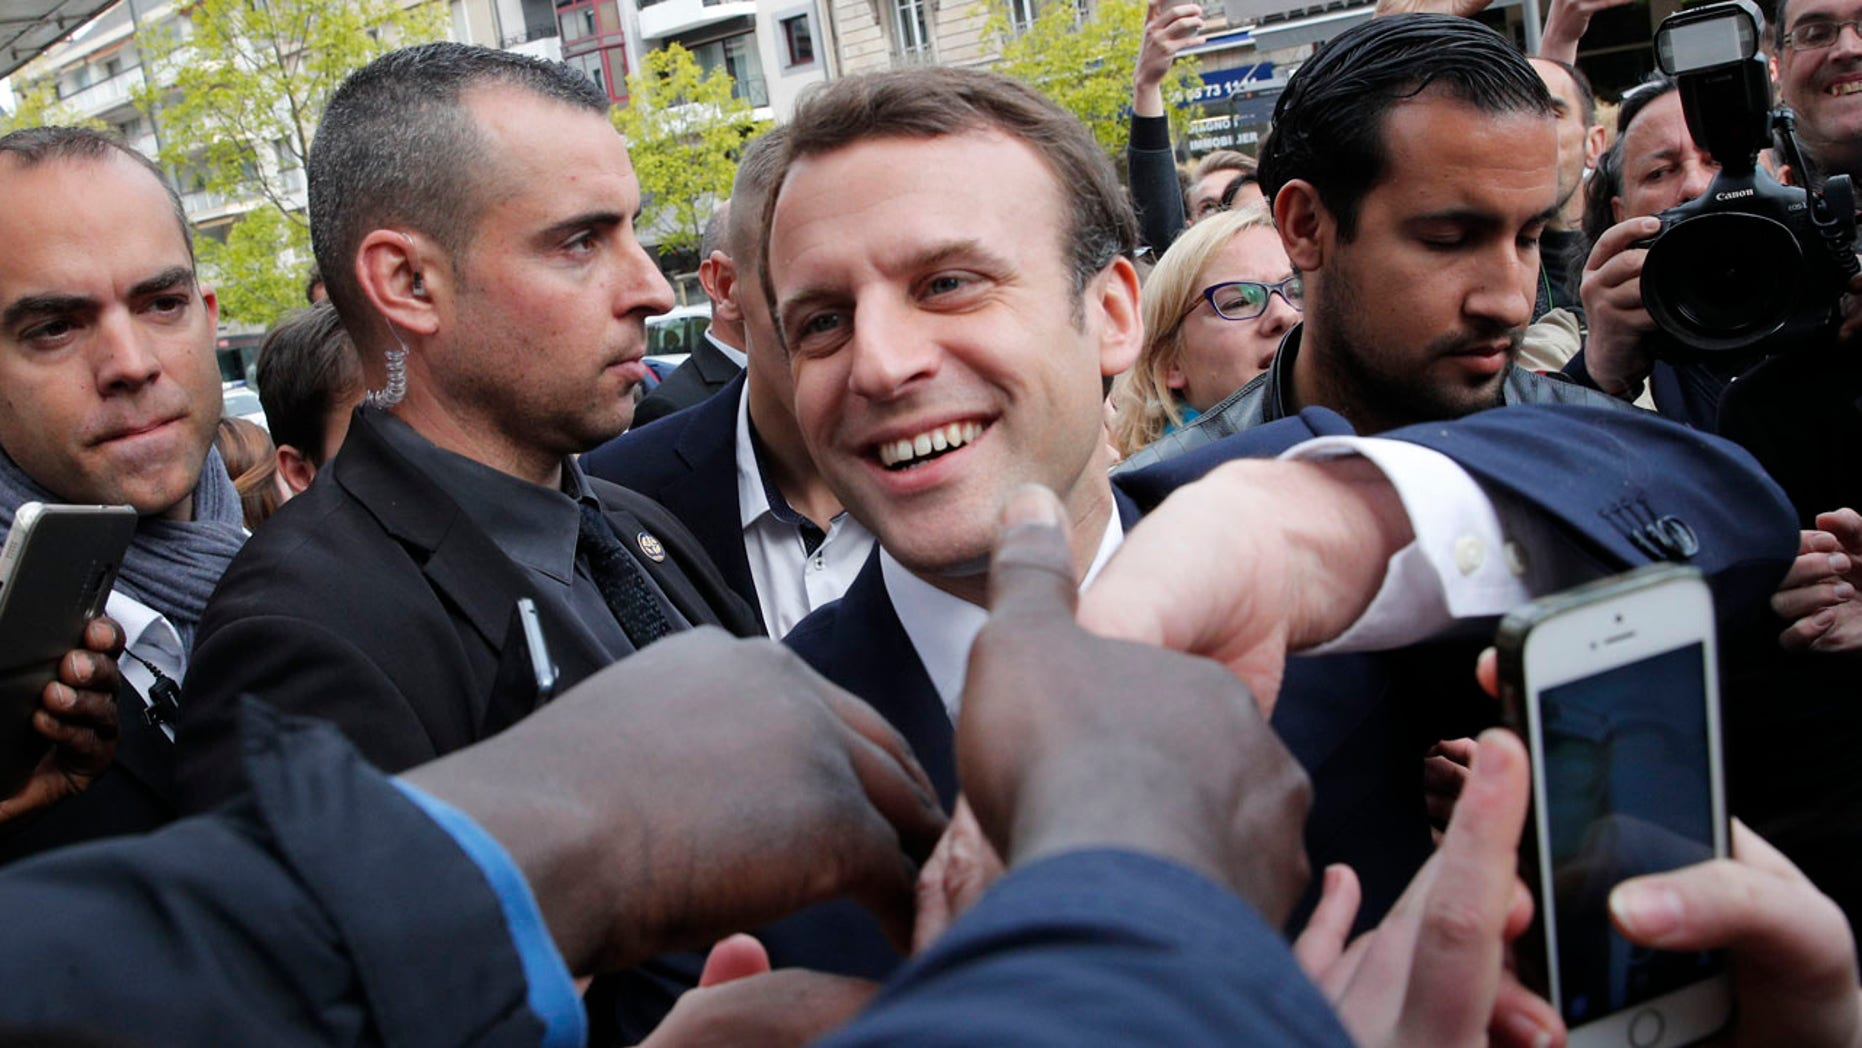 French independent centrist presidential candidate Emmanuel Macron shakes hands to supporters as he campaigns in Rodez, southern France, Friday, May 5, 2017.